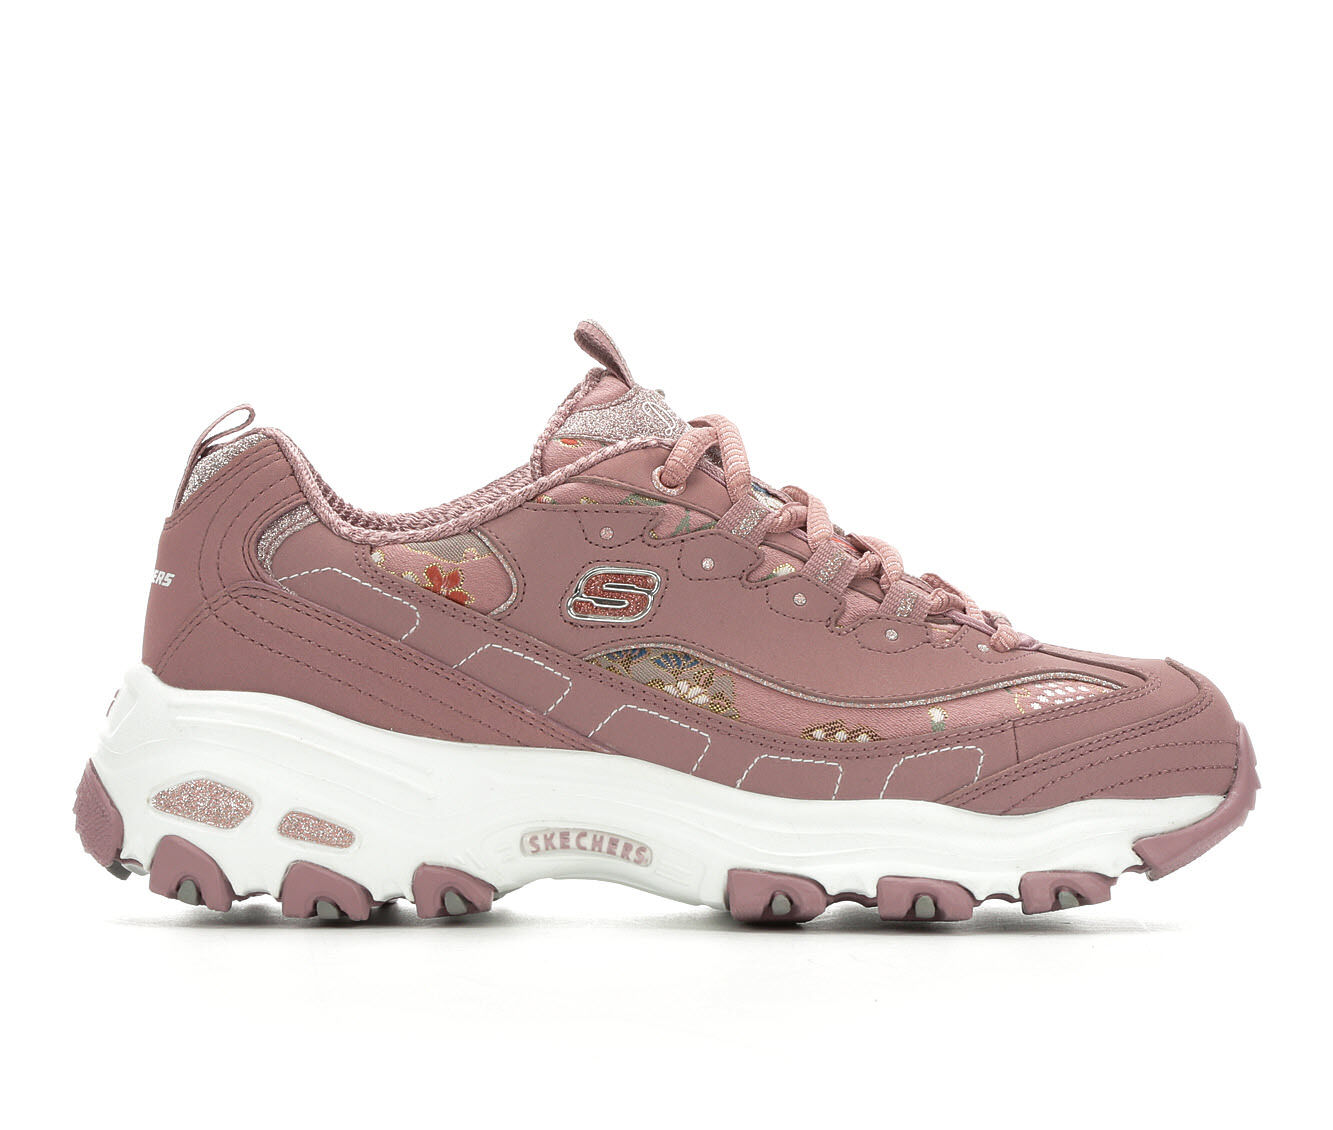 Women's Skechers D'Lites Floral Days 13082 Sneakers Mauve/White